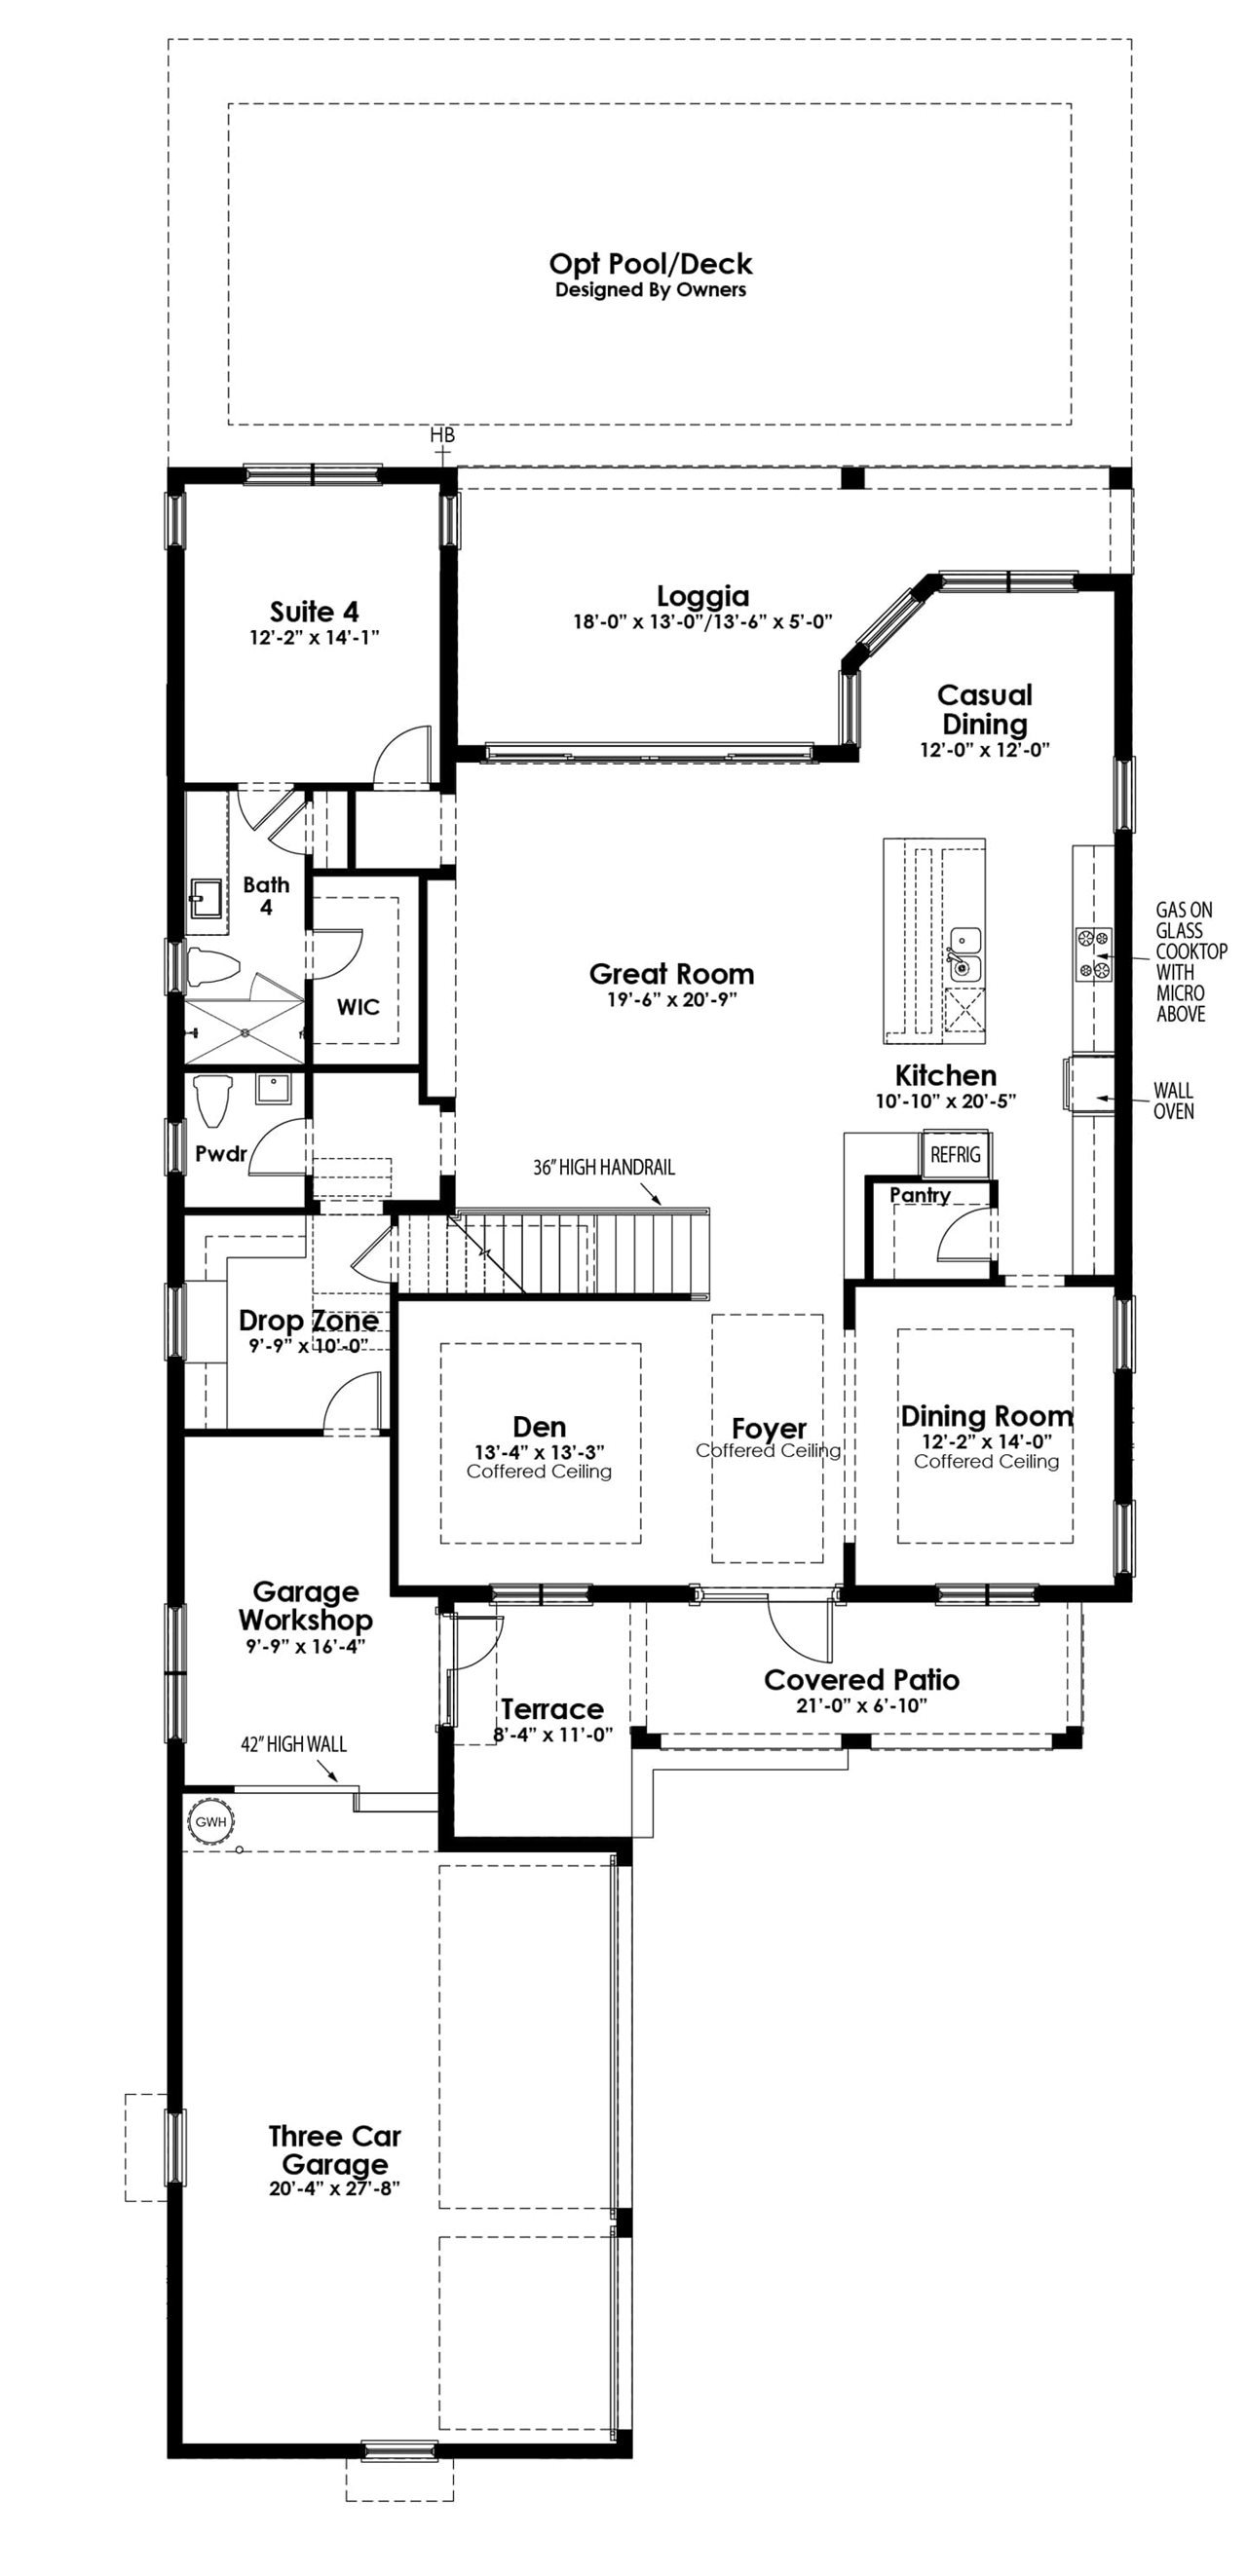 Plymouth Plan At Alton In Palm Beach Gardens Fl By Kolter Homes